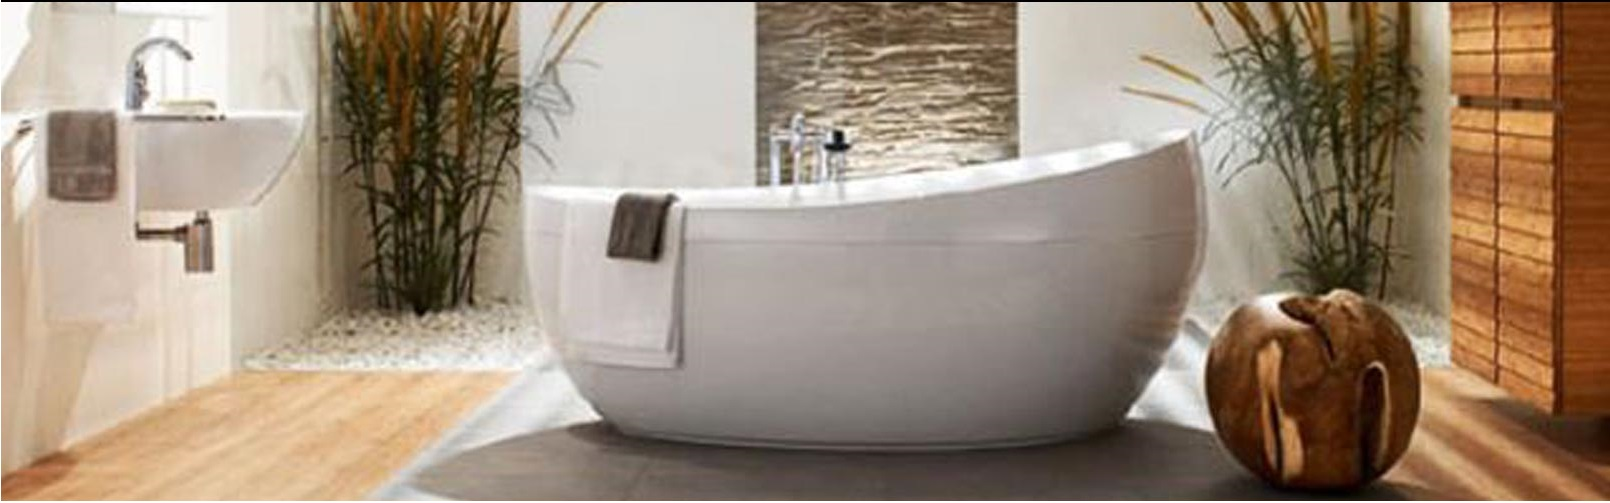 Bathroom Fixtures and Accessories | Kitchen Accessories Singapore